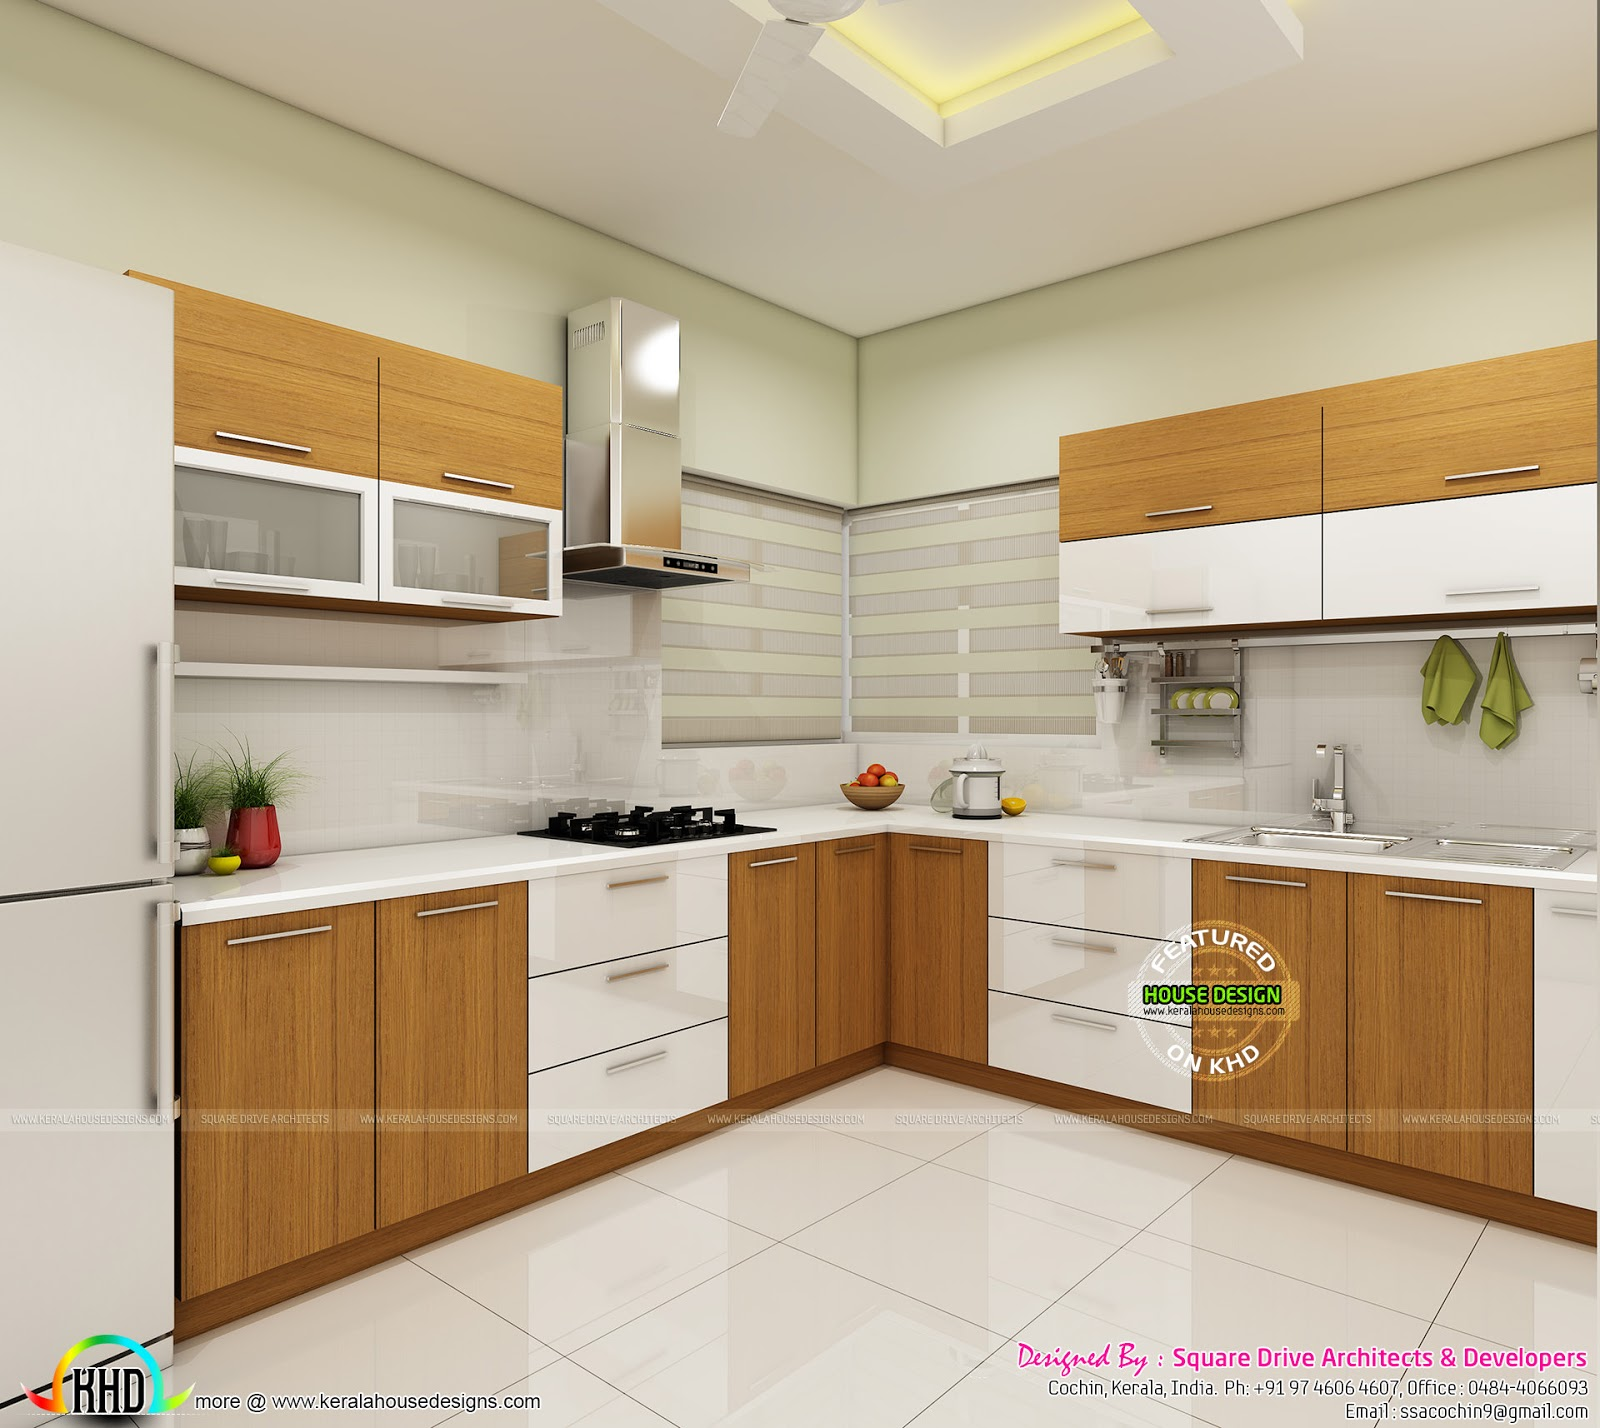 Modern home interiors of bedroom dining kitchen kerala Www house kitchen design